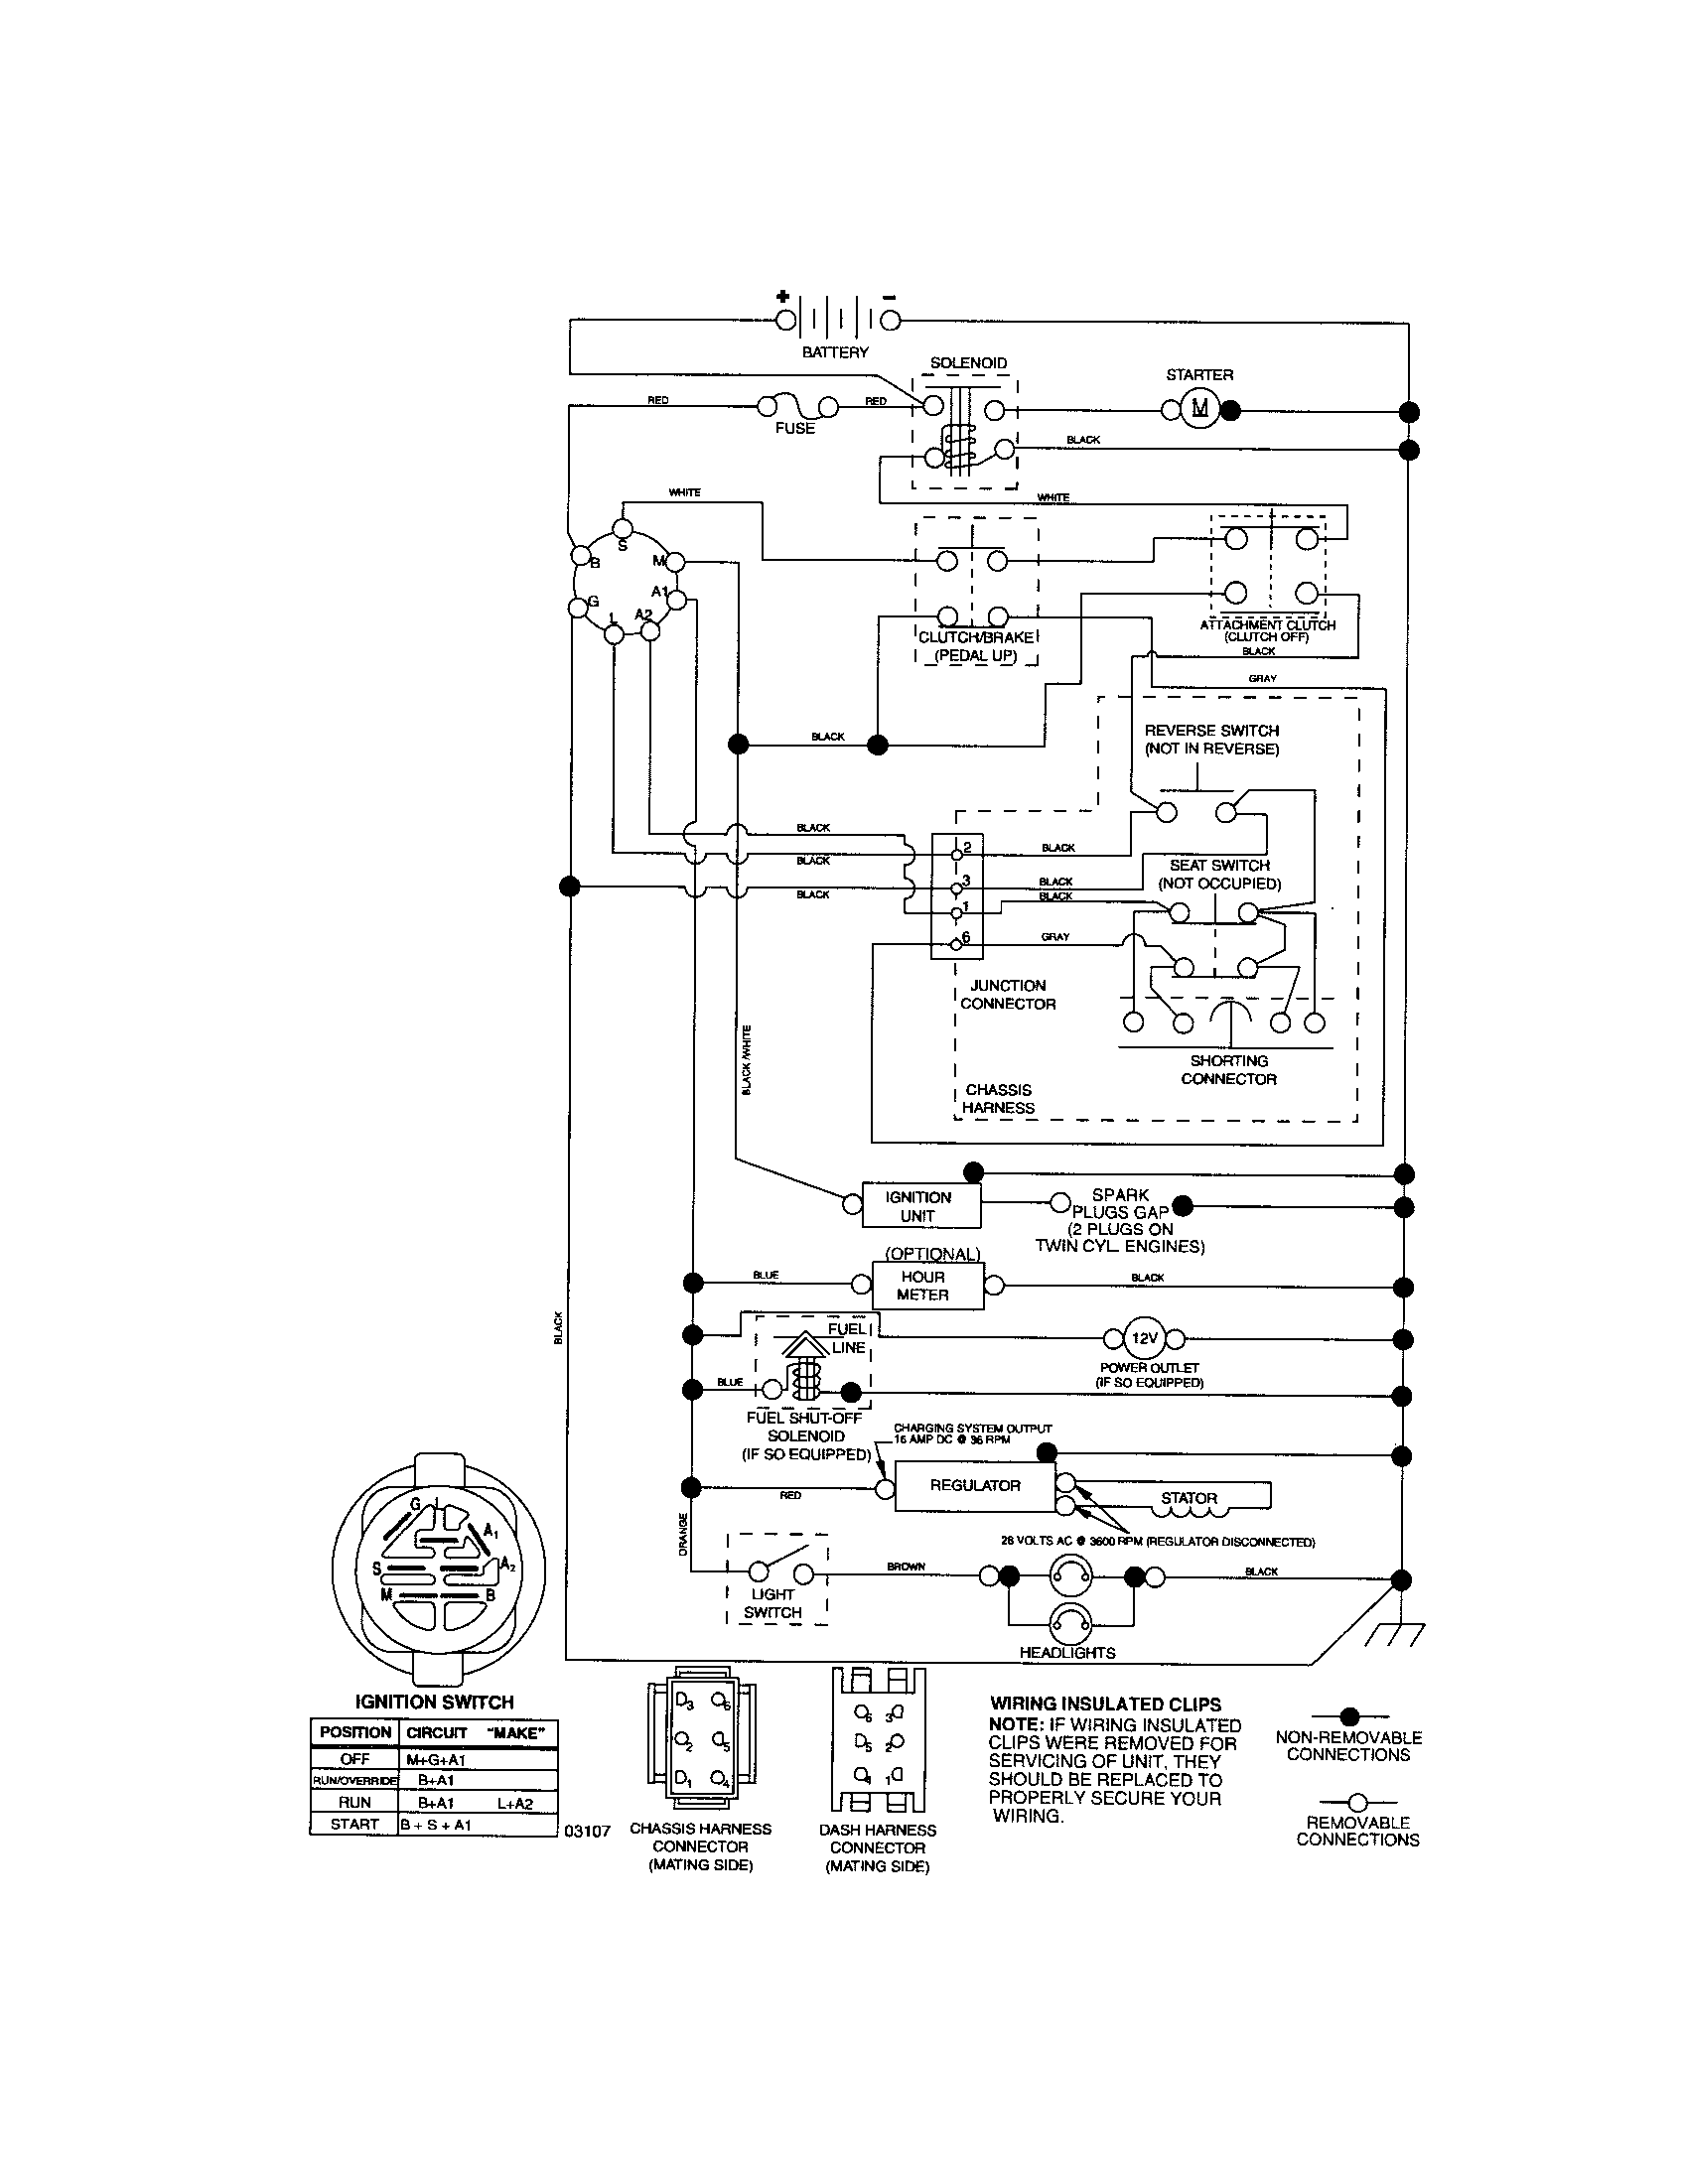 6af5f1447fd13c8443376822ddc1e105 craftsman riding mower electrical diagram wiring diagram craftsman lt1000 wiring diagram at soozxer.org